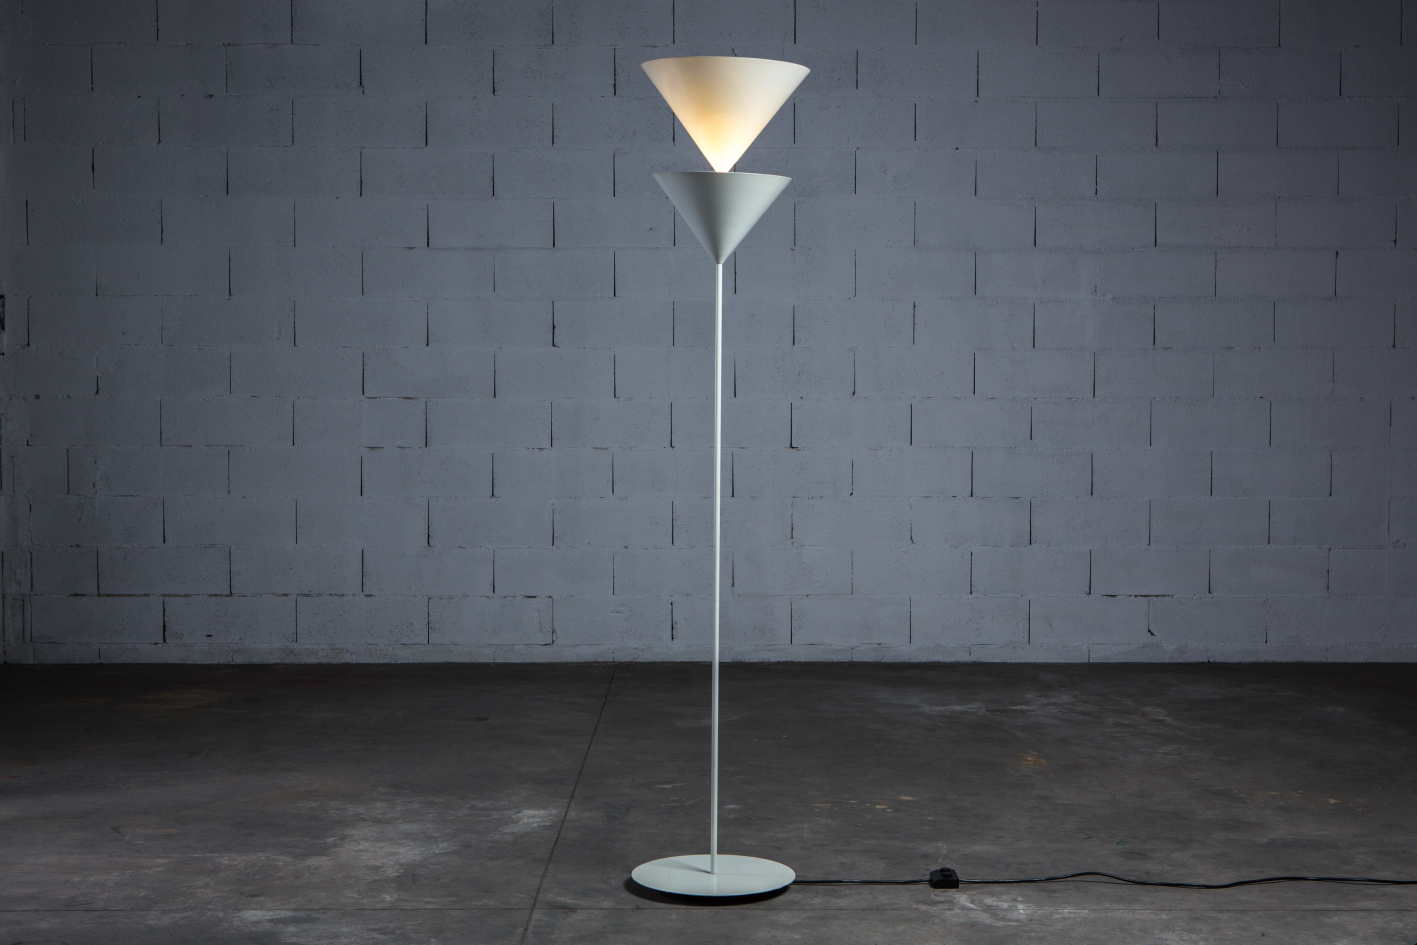 Floor lamp Model 340 Pascal - Vico Magistretti for O-Luce - Lights on